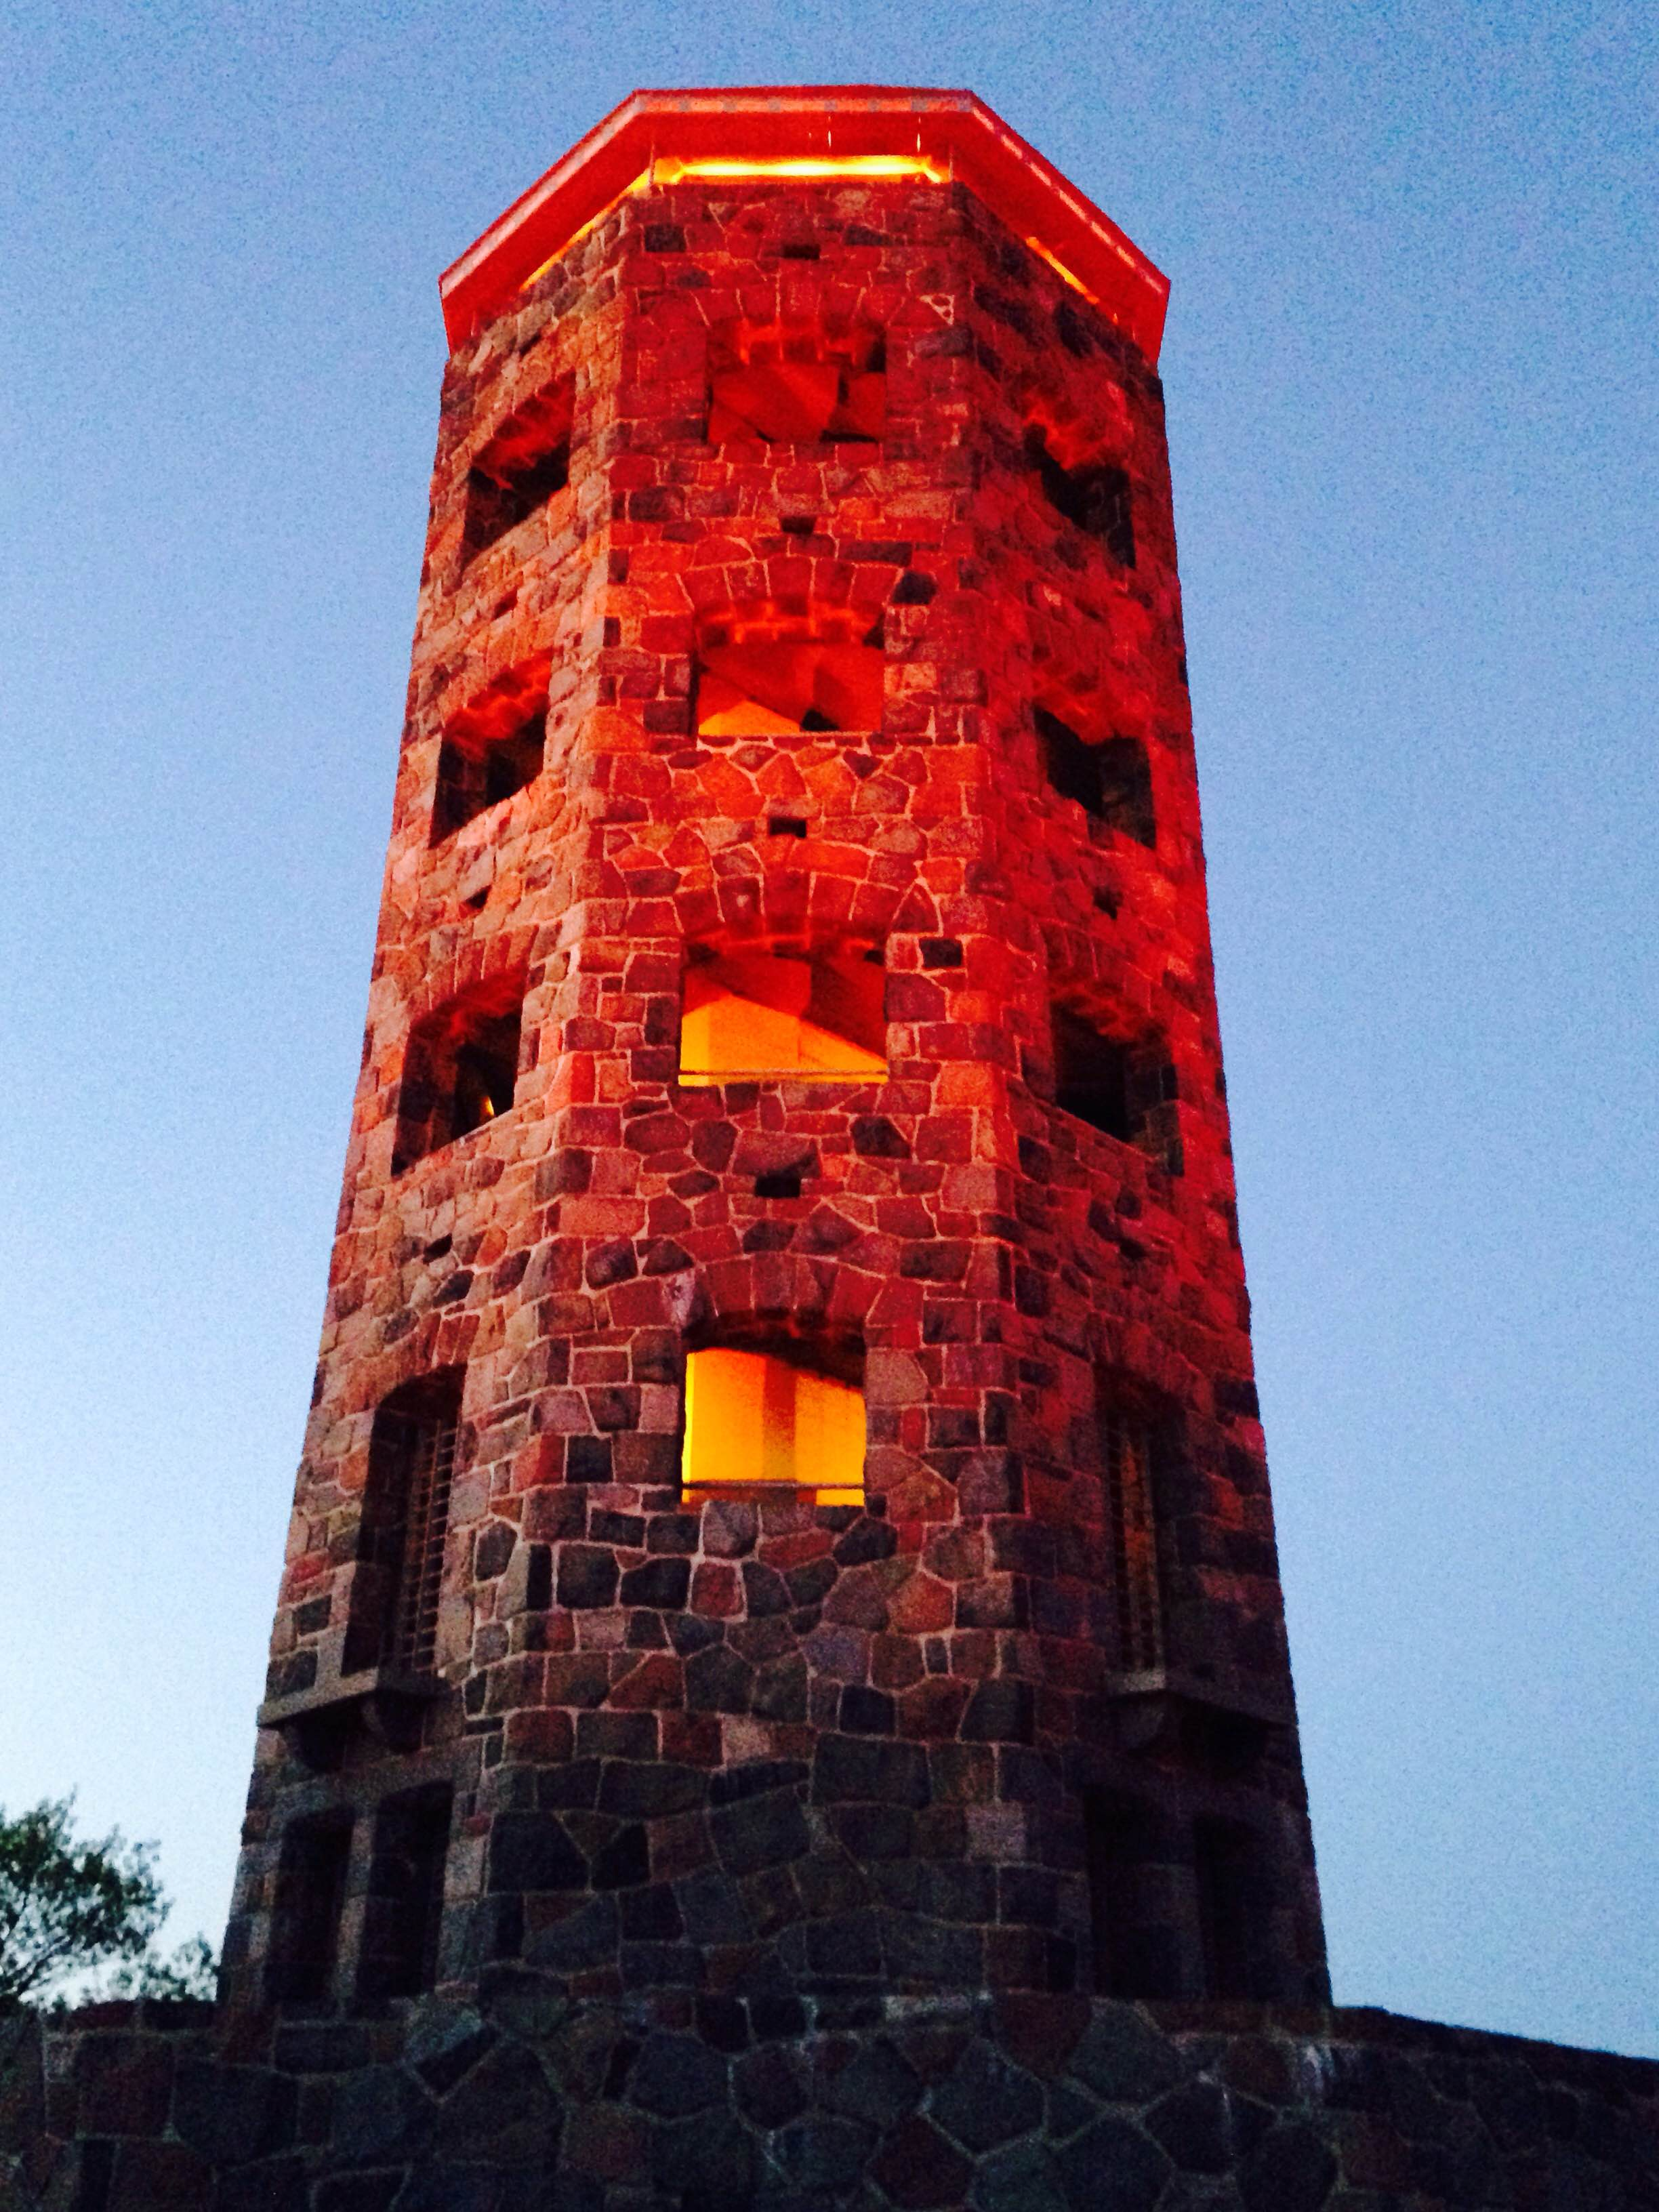 Enger tower orange